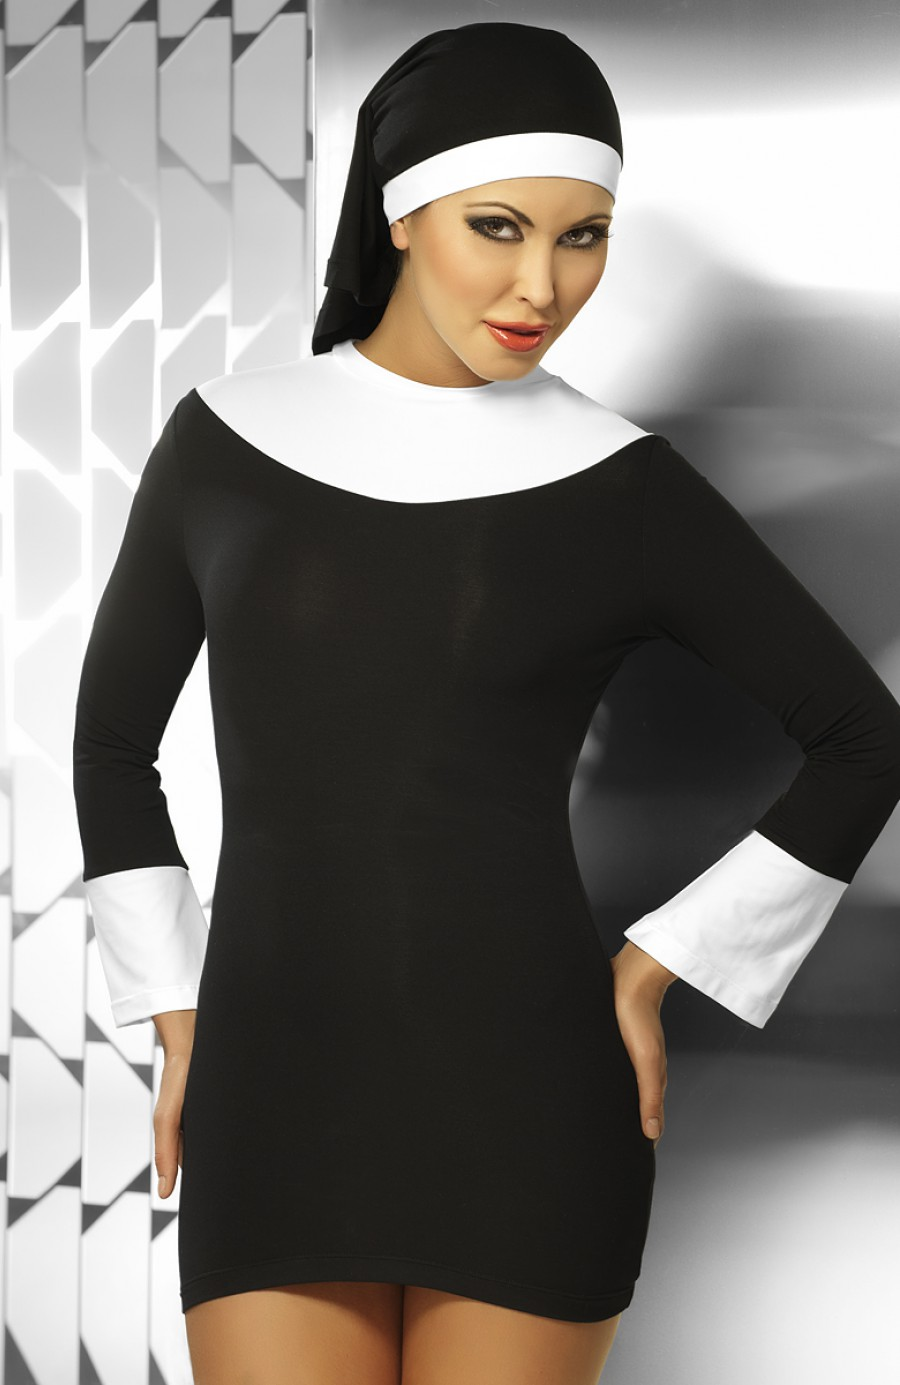 Sexy plus size nun costume solved